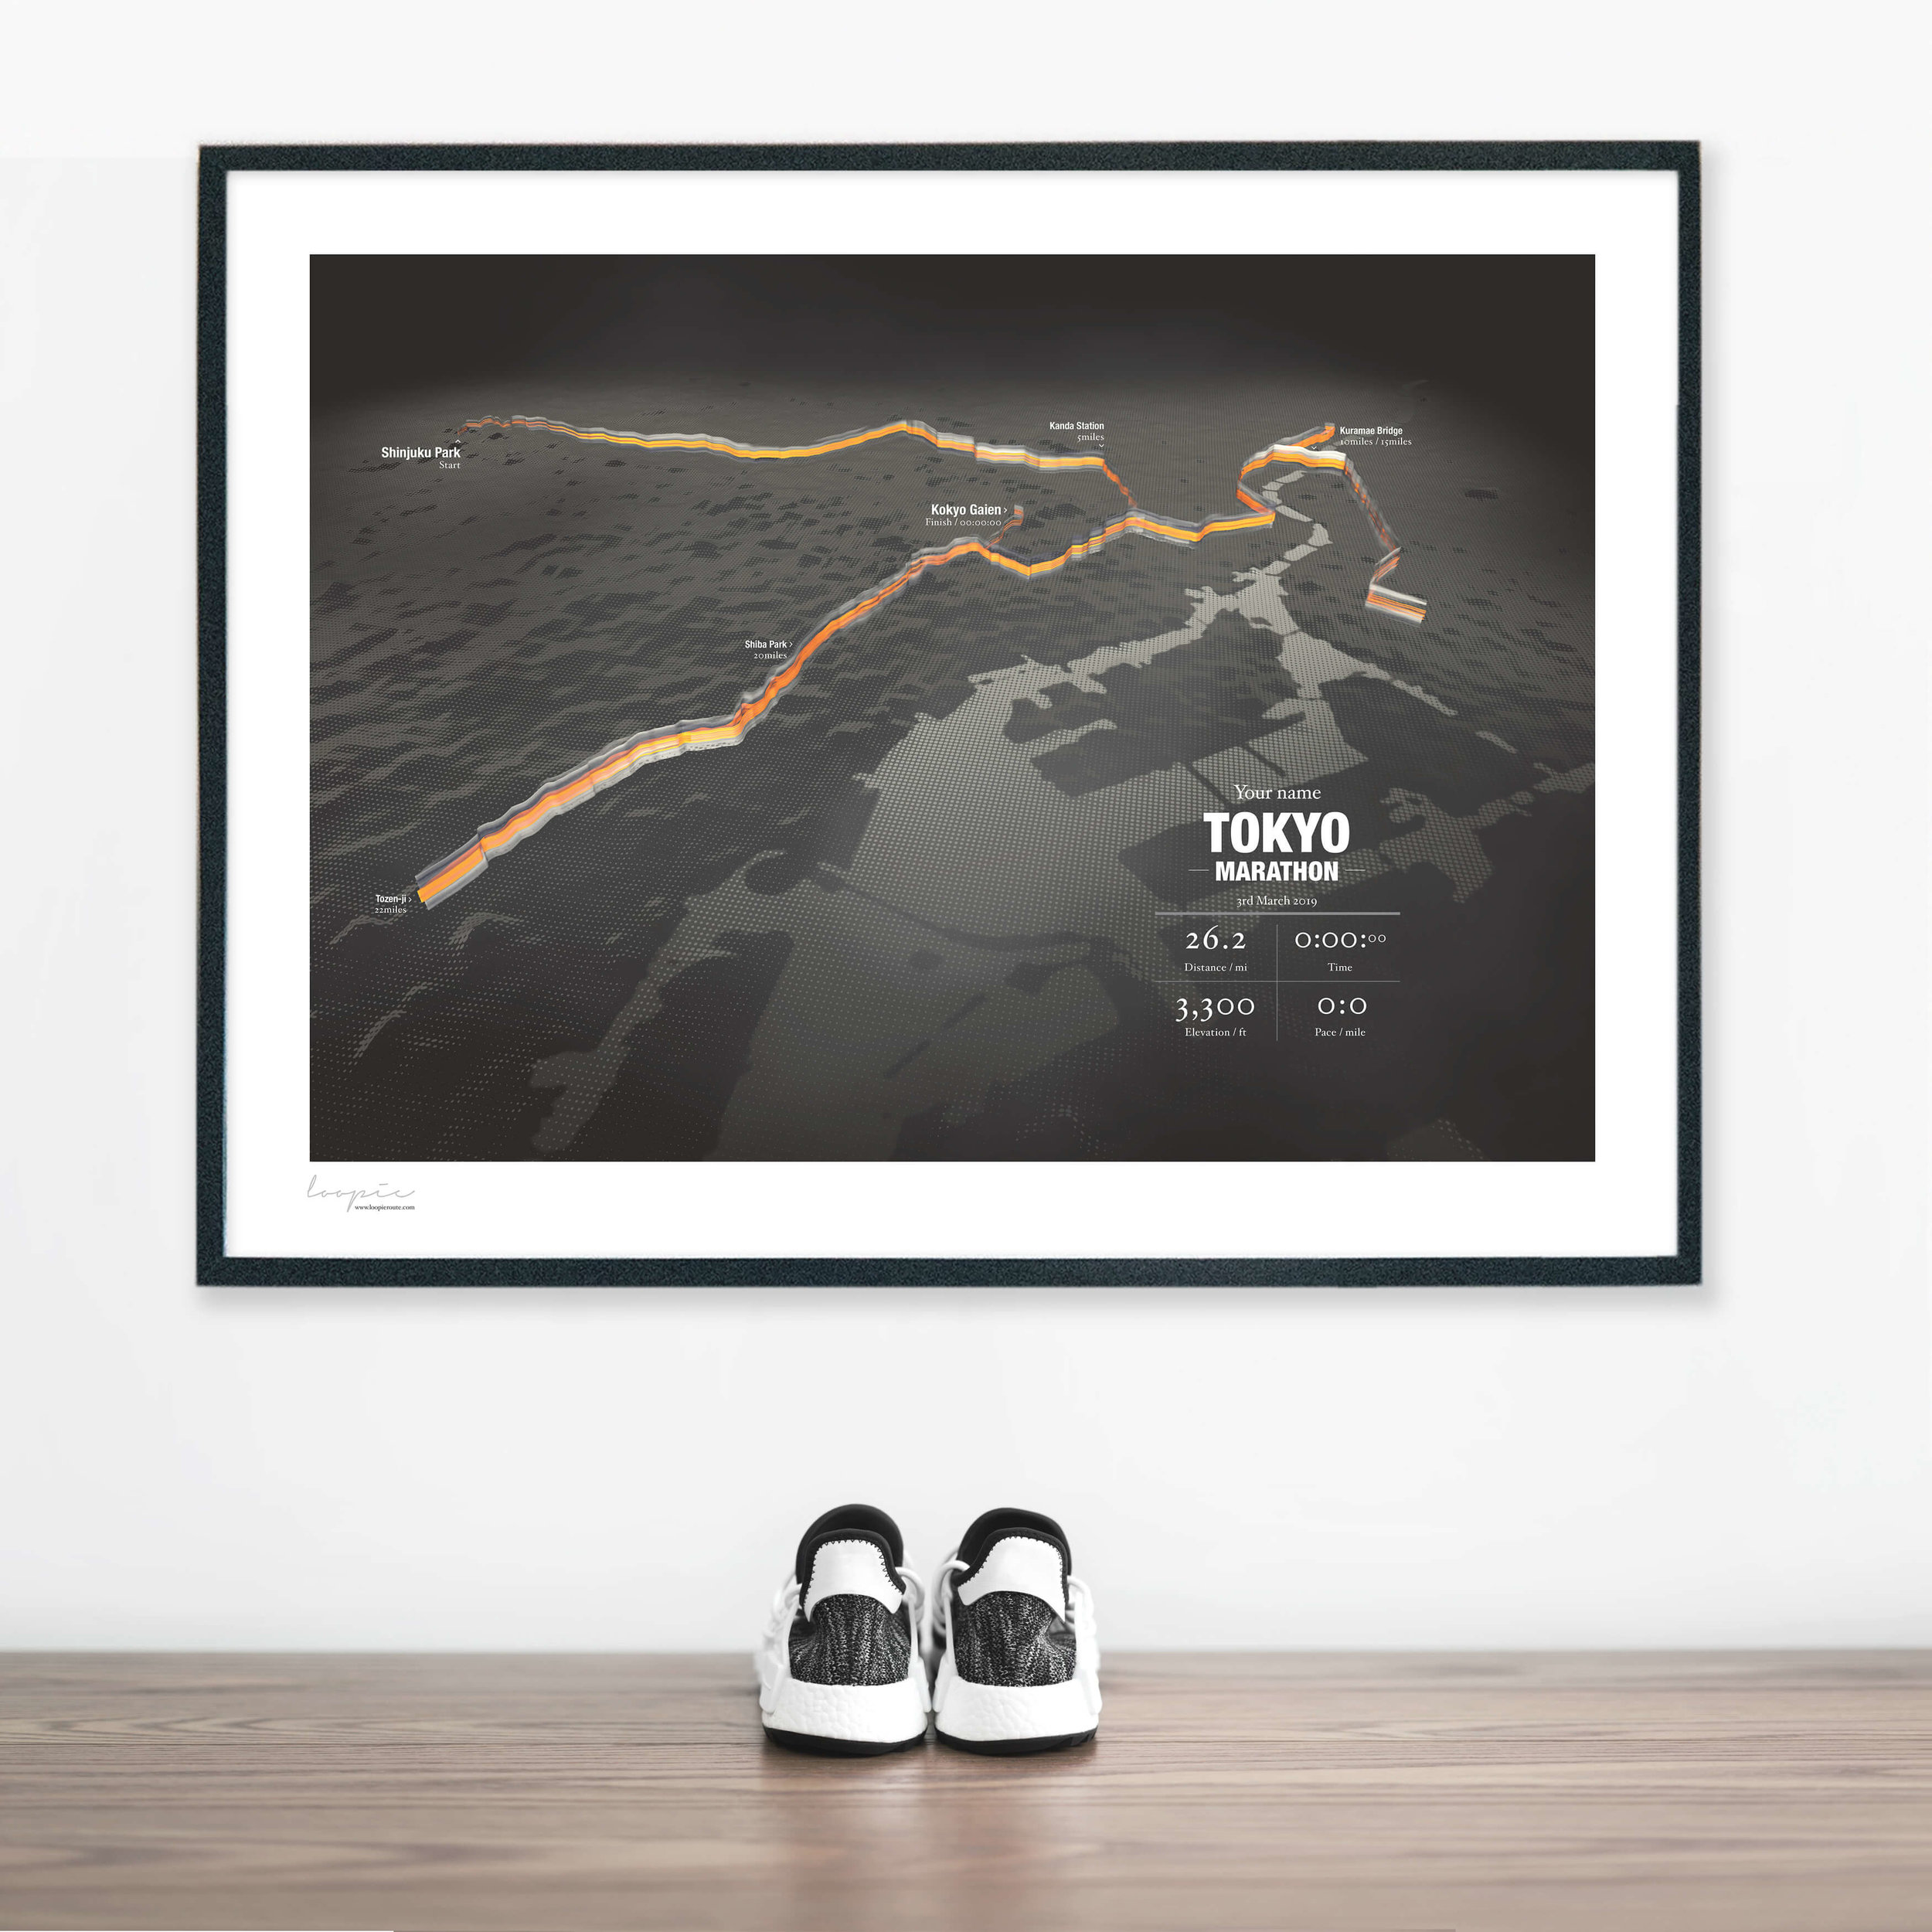 TokyoMarathon - A unique image personalised with your name and finishing time.